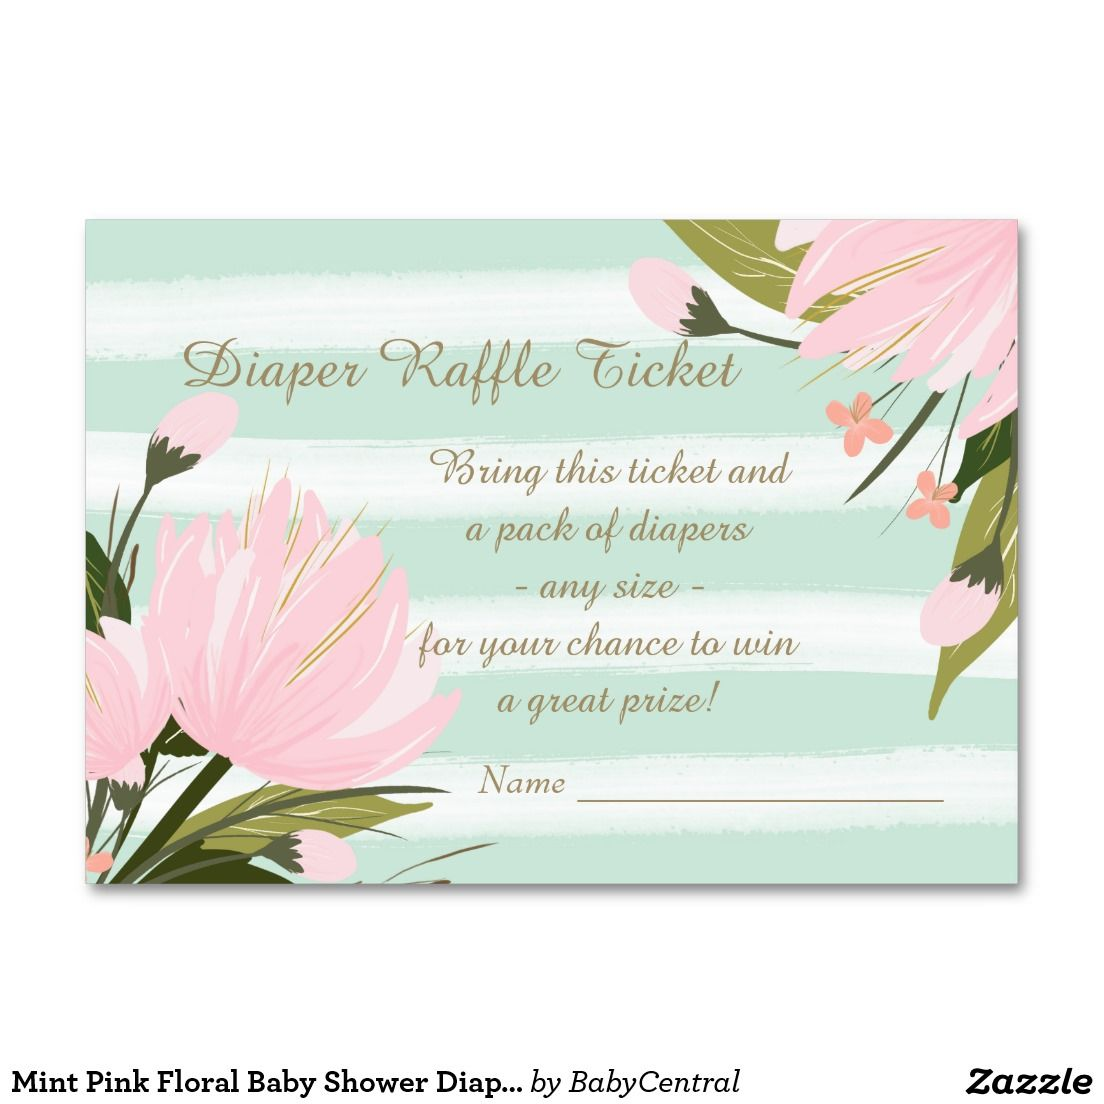 Mint pink floral baby shower diaper raffle ticket large business mint pink floral baby shower diaper raffle ticket large business cards pack of 100 magicingreecefo Choice Image